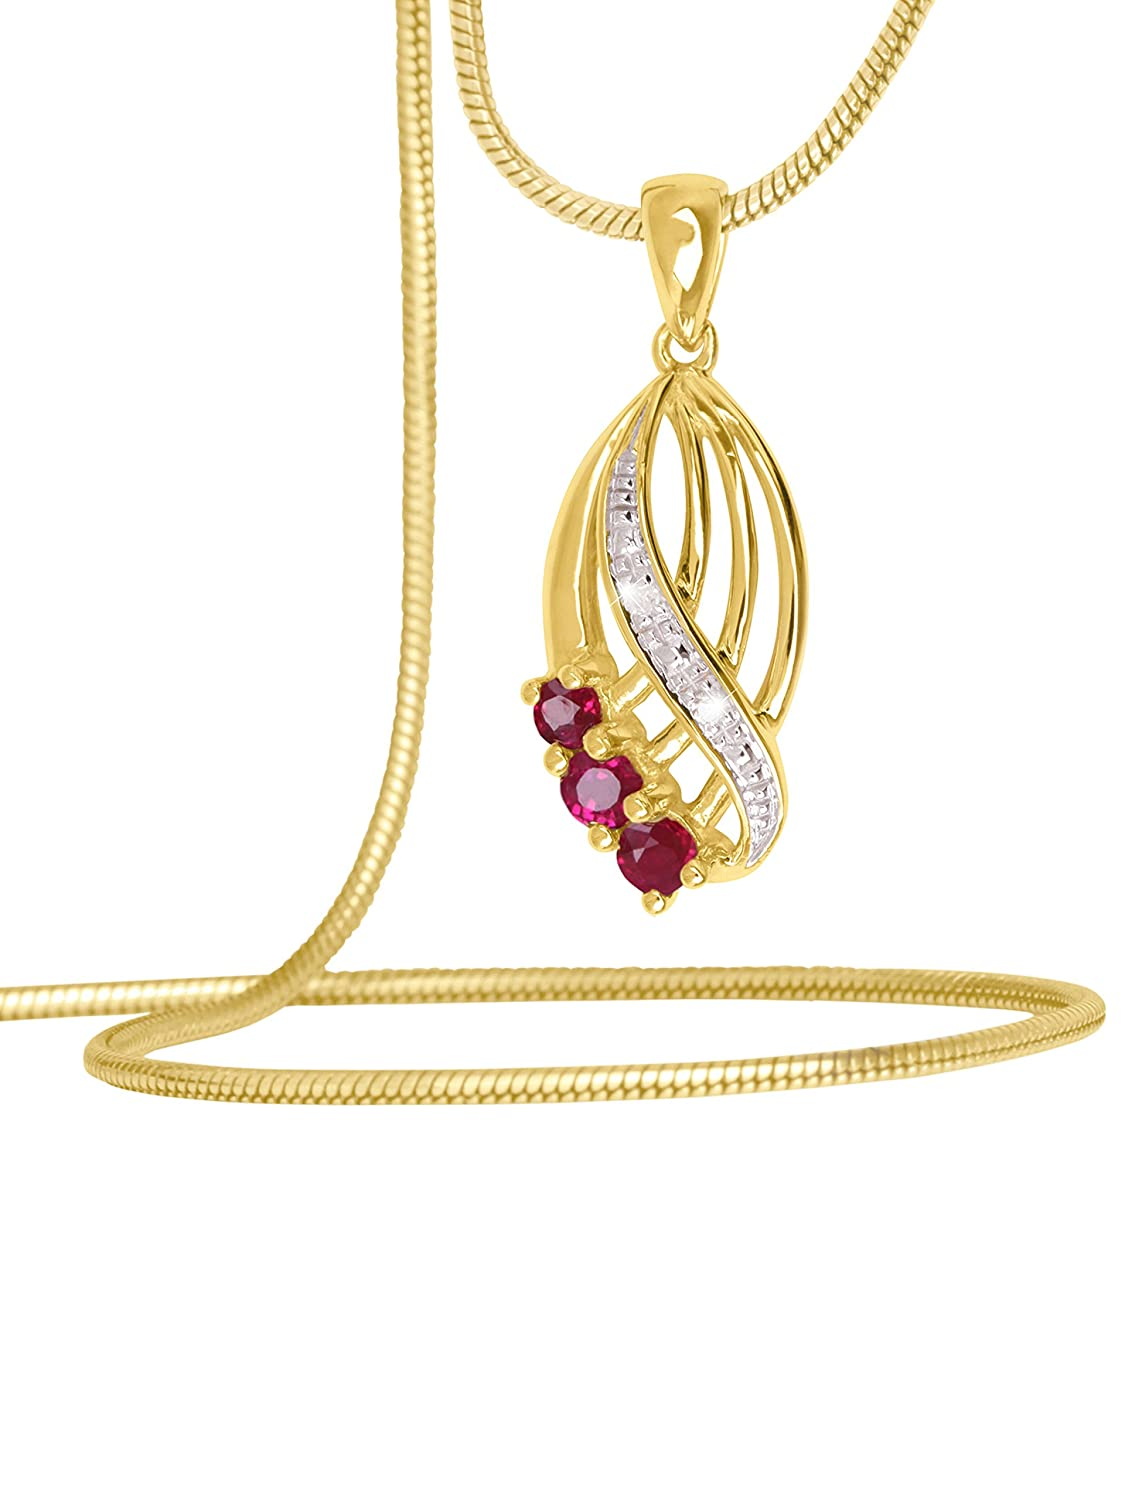 Ladies Pendant Ruby geniune Gold 333 8 carats Necklace Yellow Gold Quality New